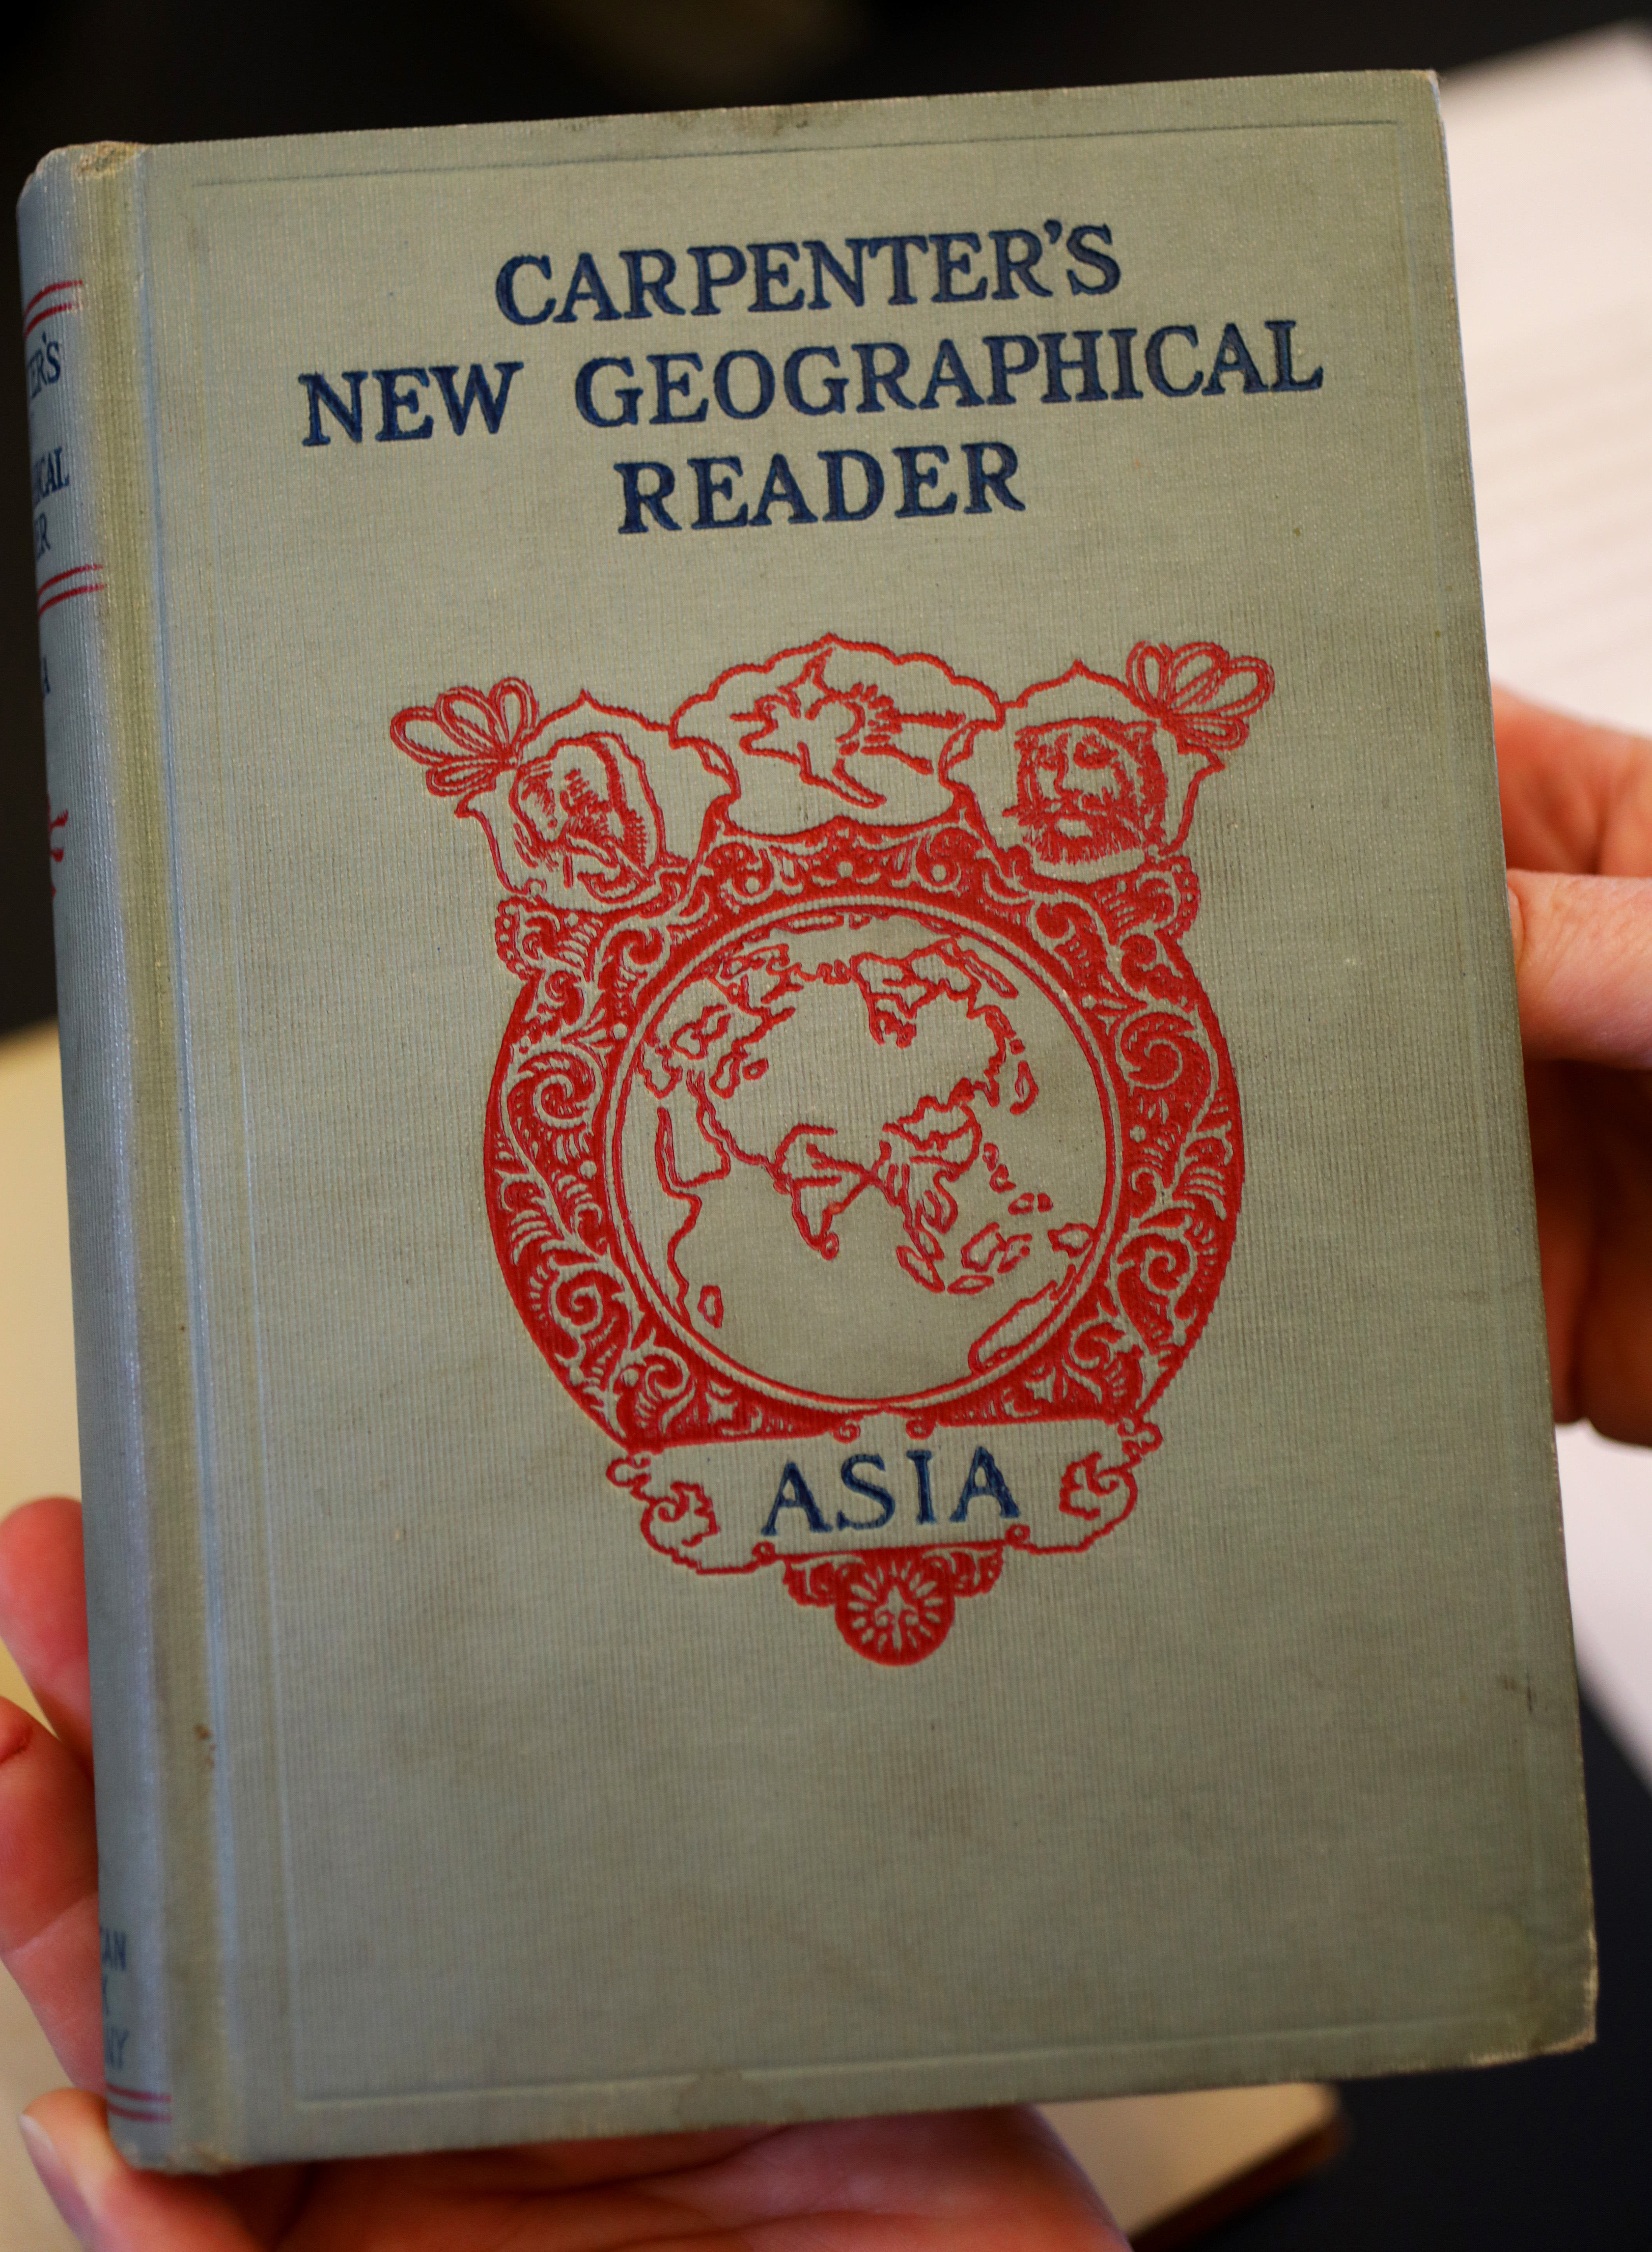 This is one of the old books that were returned to the west branch of the Somerville Public Library.